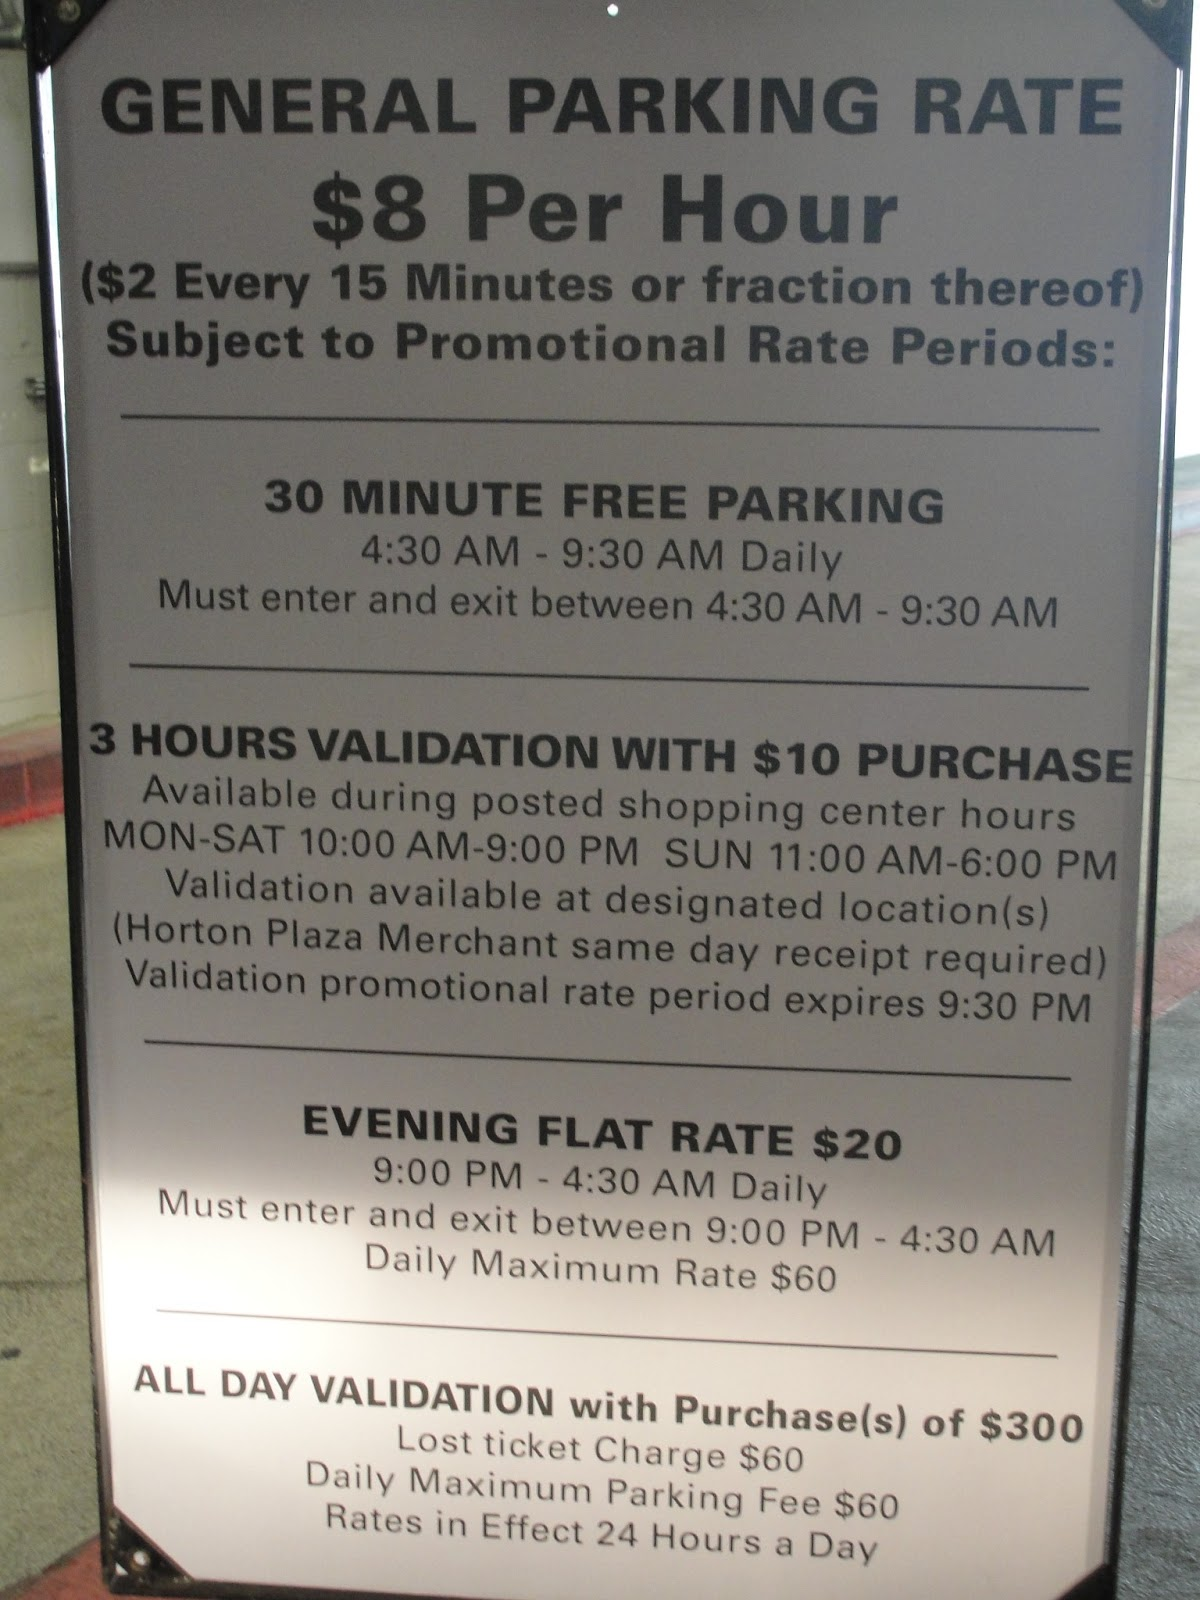 What is validating parking mean